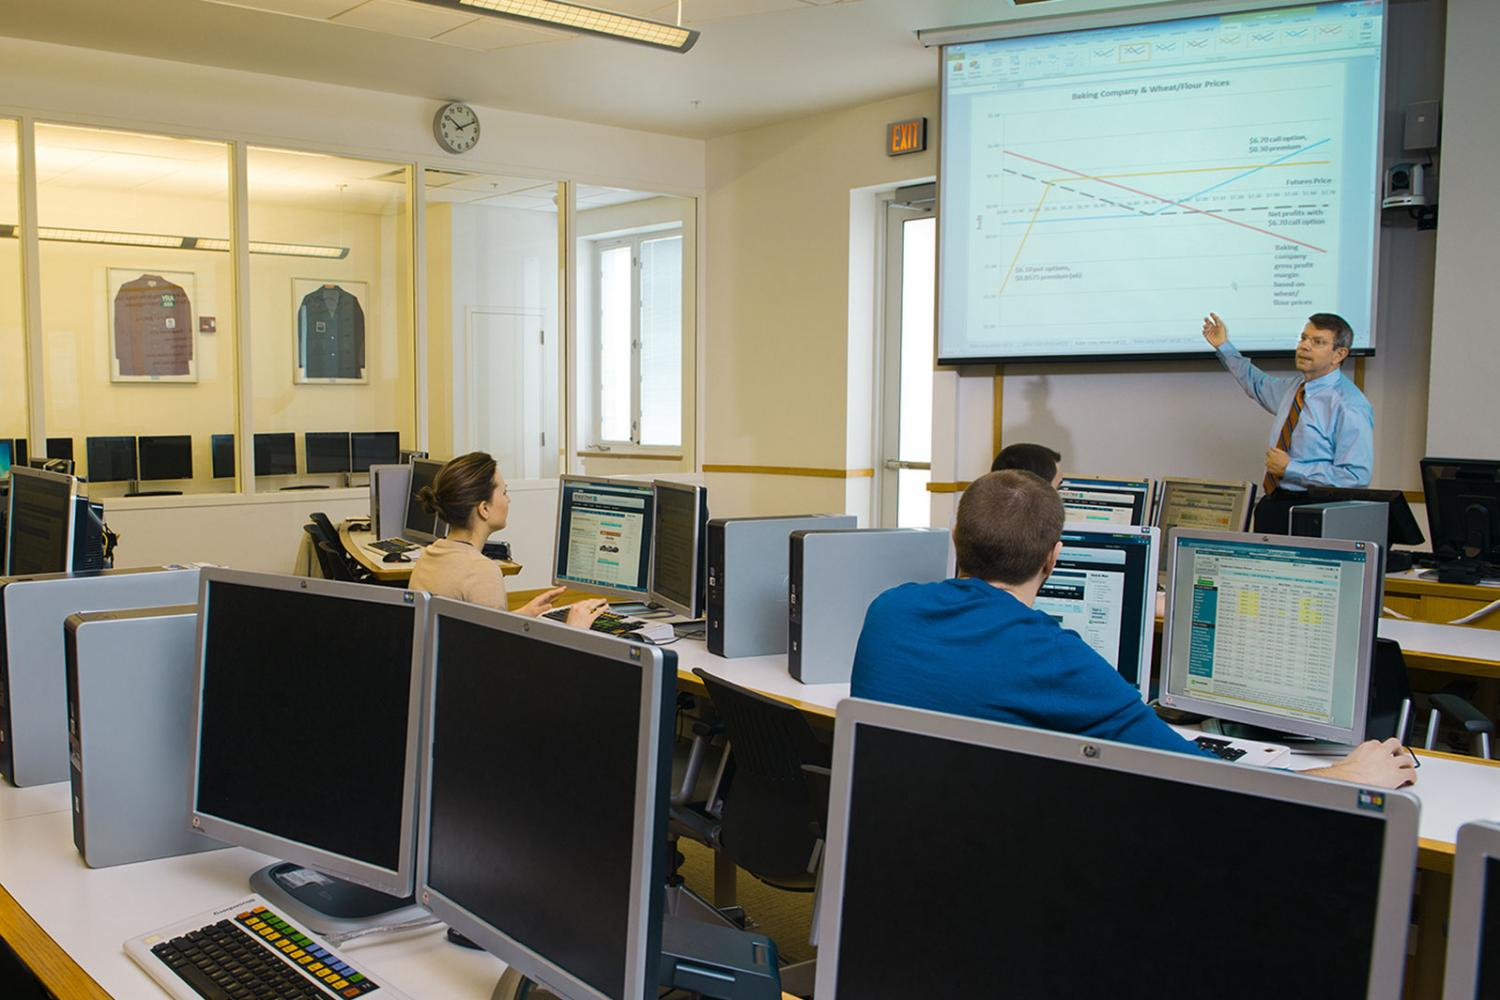 Photo of students and faculty in a computer classroom.